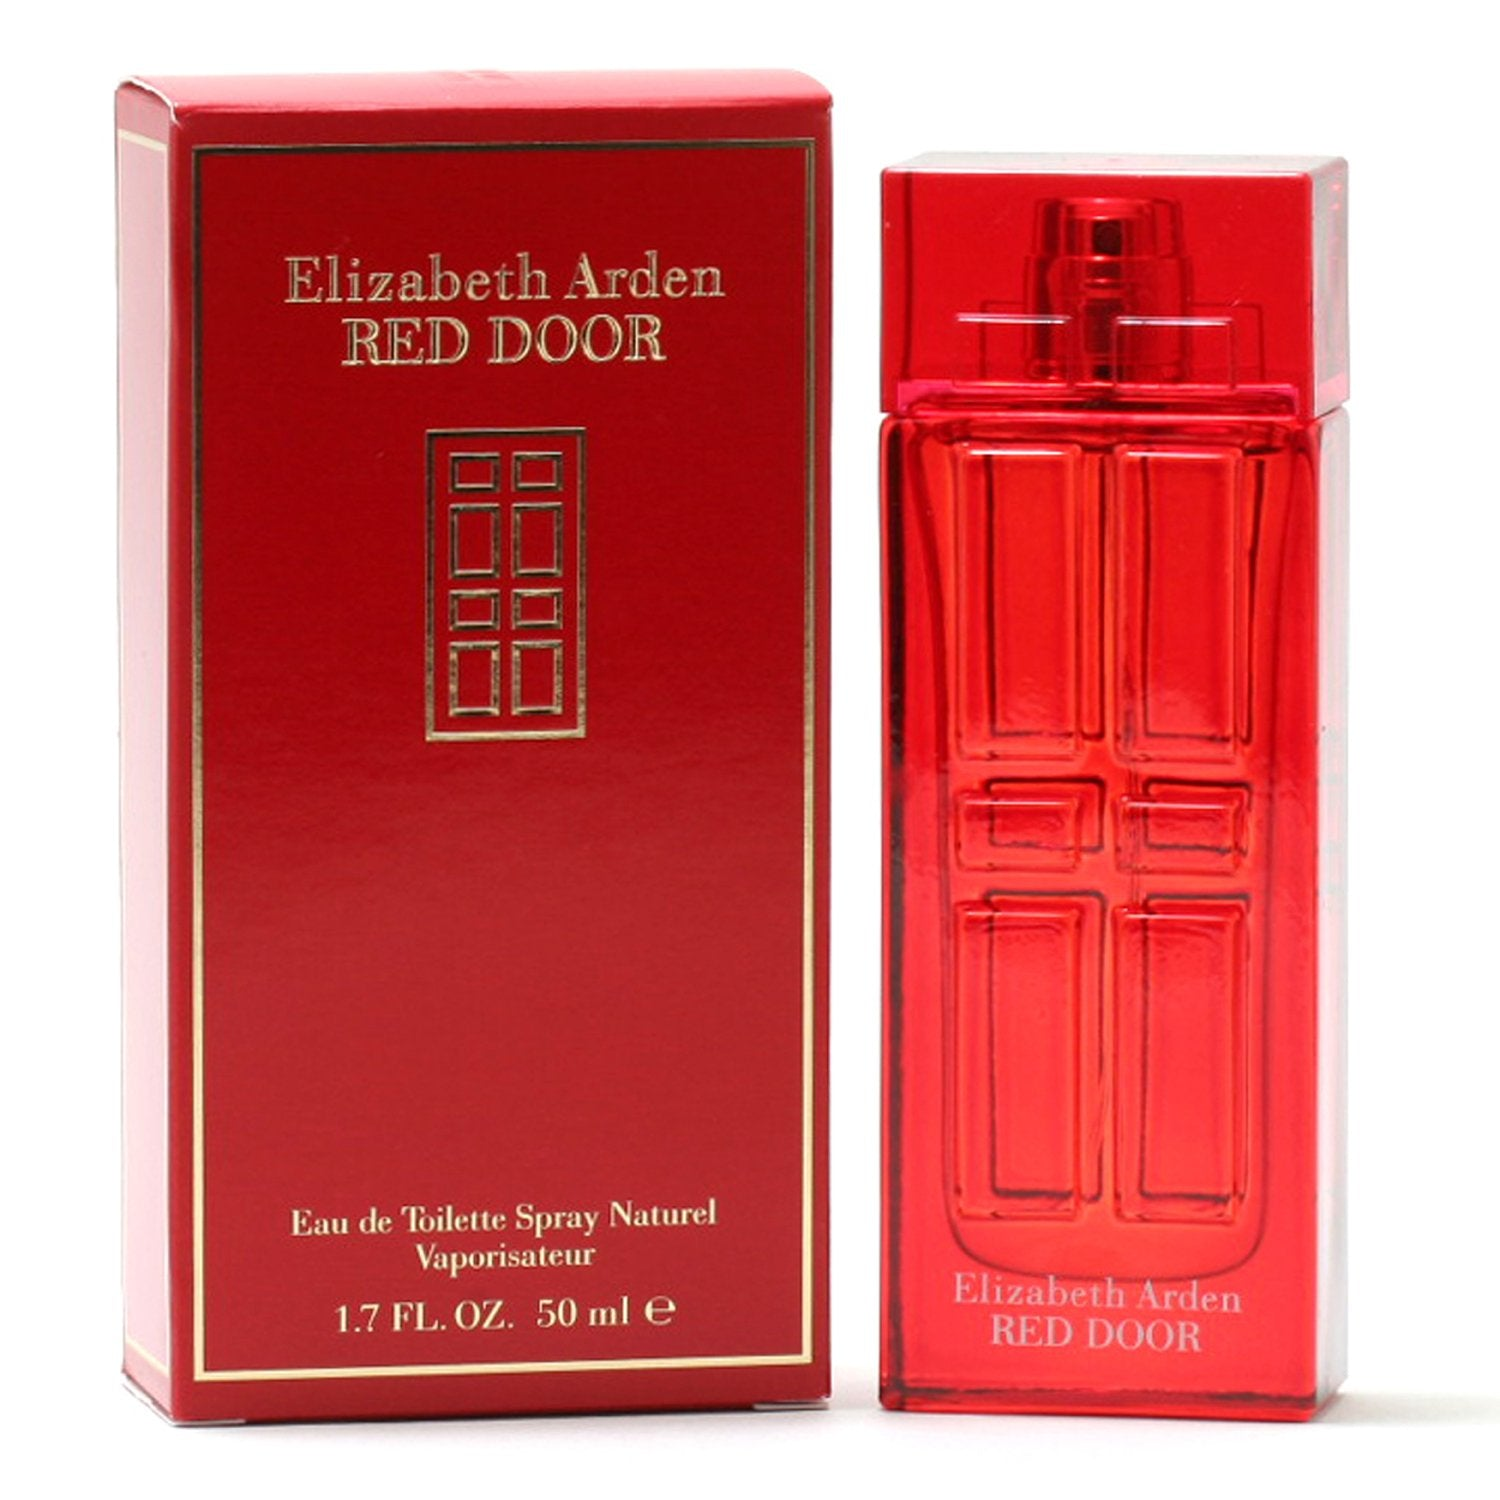 Perfume - RED DOOR FOR WOMEN BY ELIZABETH ARDEN - EAU DE TOILETTE SPRAY